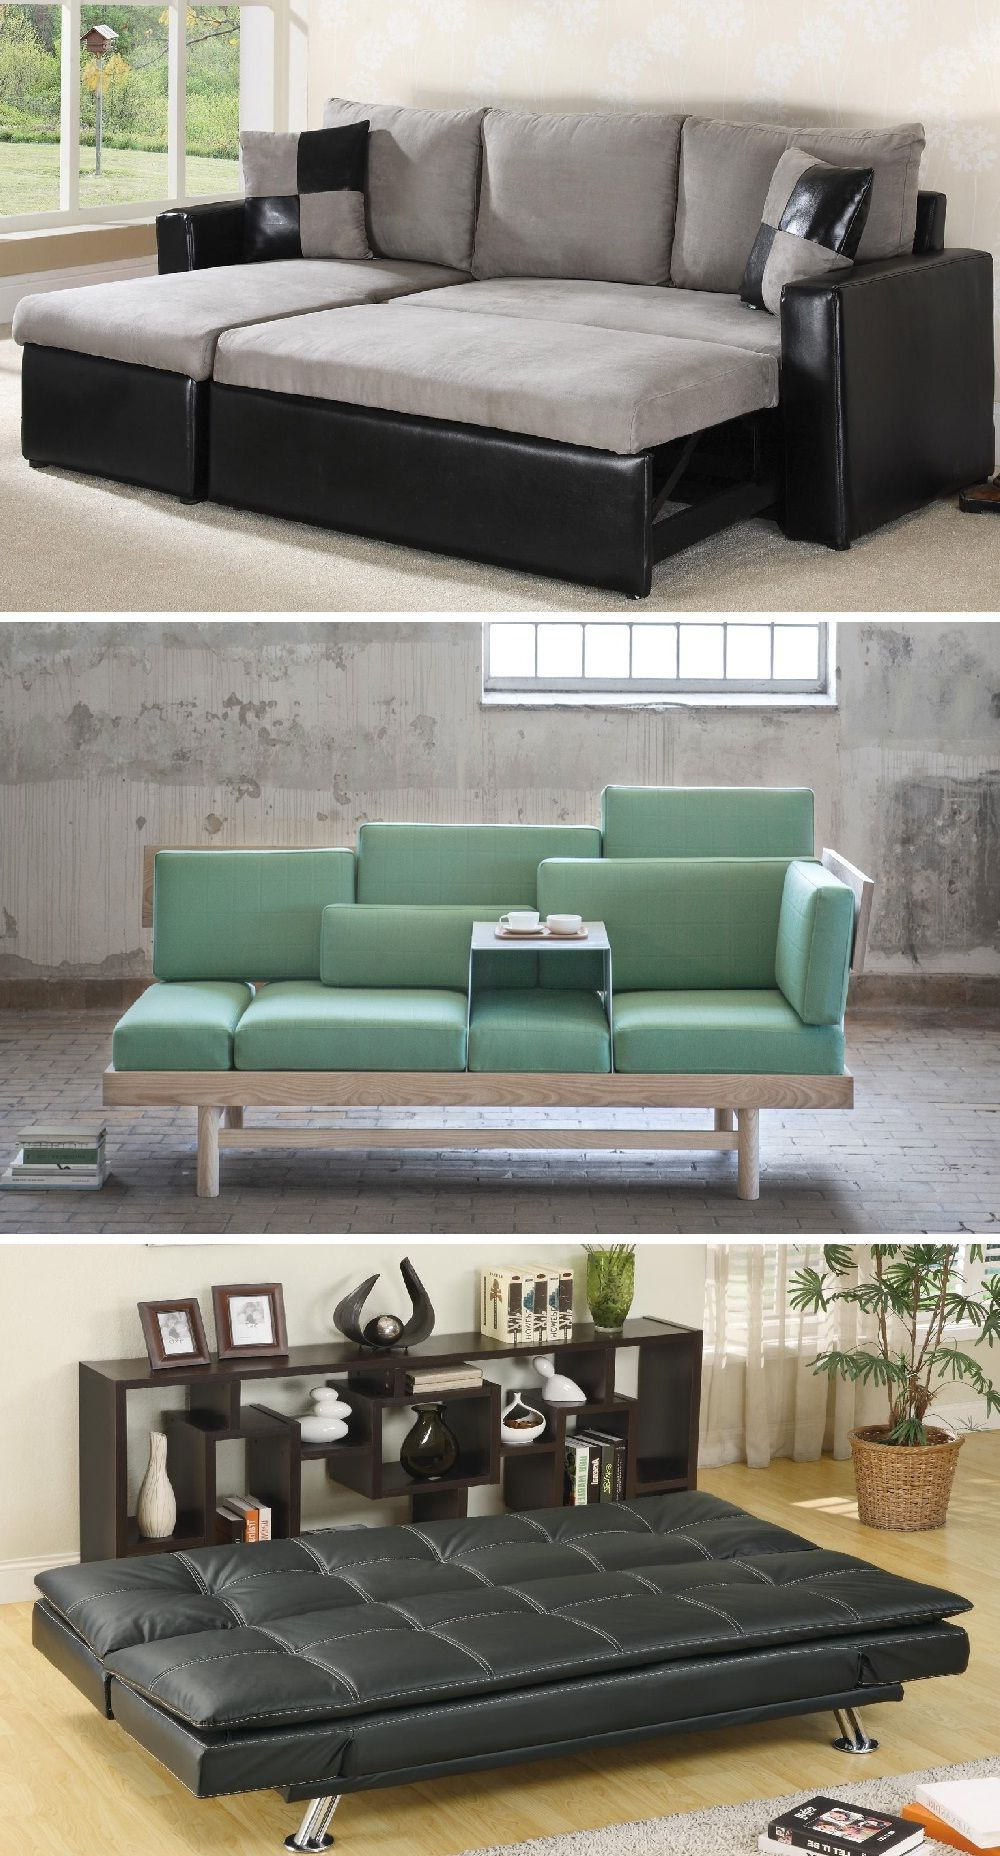 Alternative Sofa Sleeper Sofa Alternative Couches And Furniture Sleeper Sofa